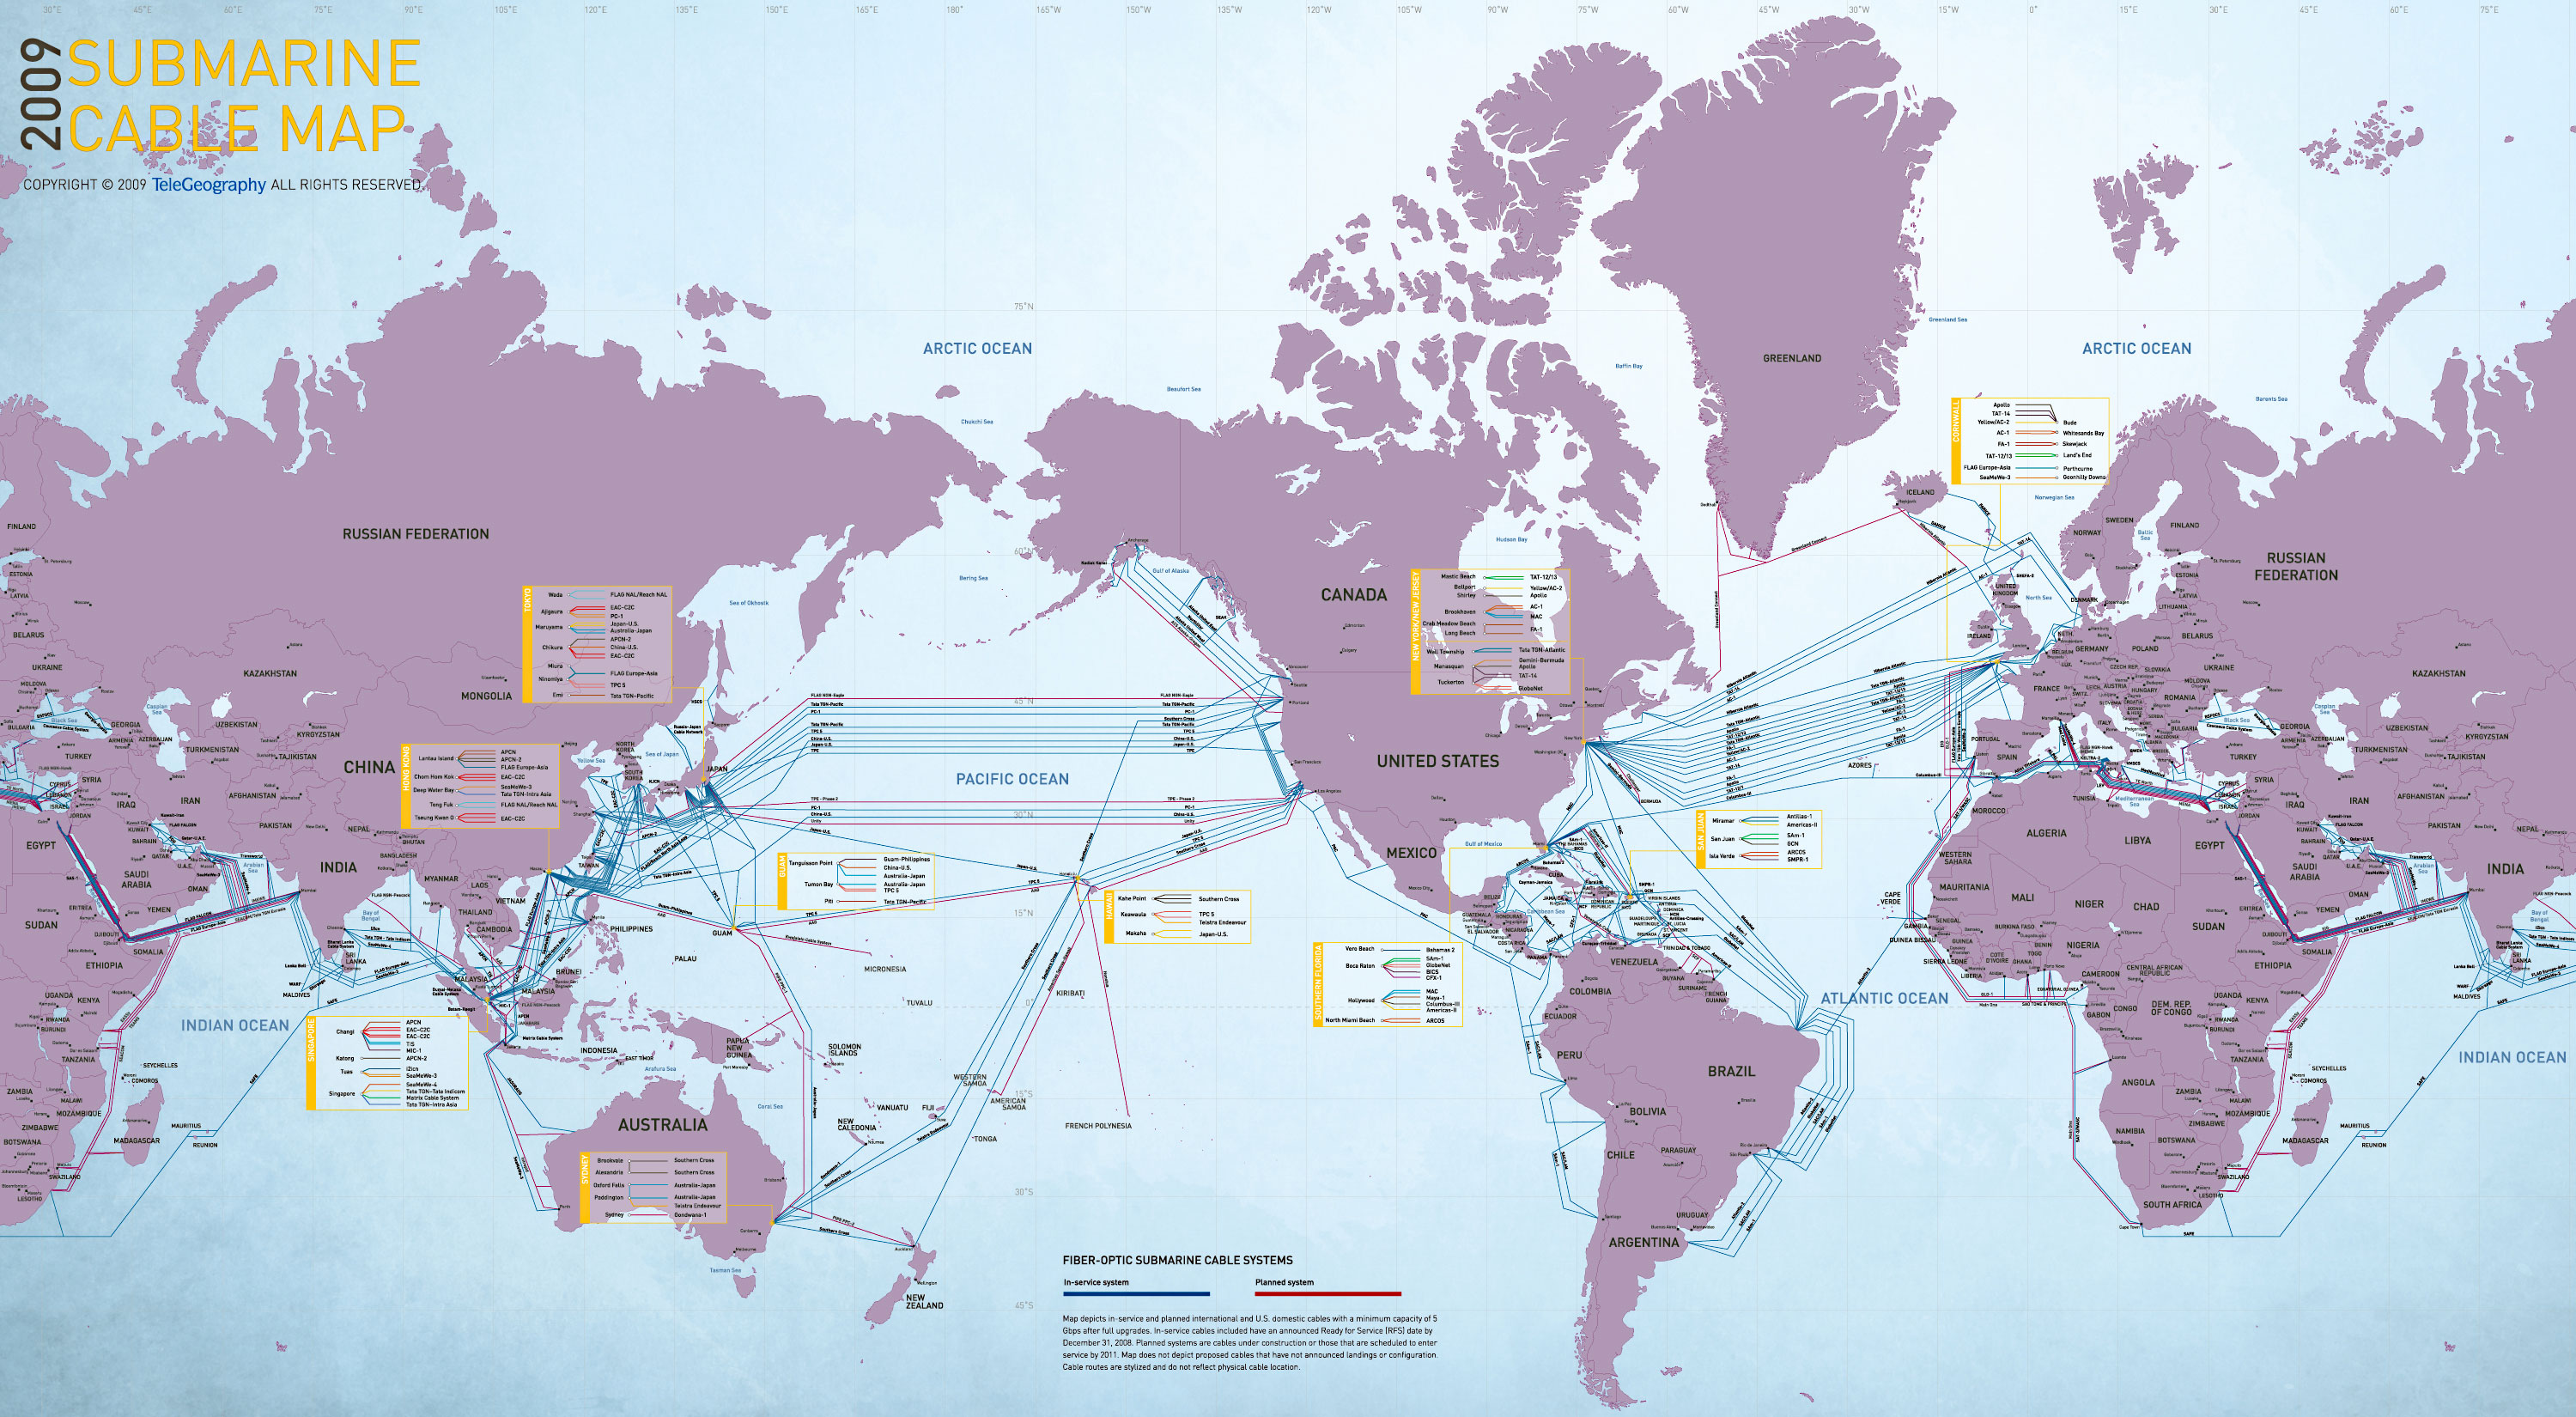 The world map of submarine communications cable infographic dumps 75 e 1so e 5 w a0 w 75 e submarine cable map copyright o 2009 gumiabroncs Choice Image